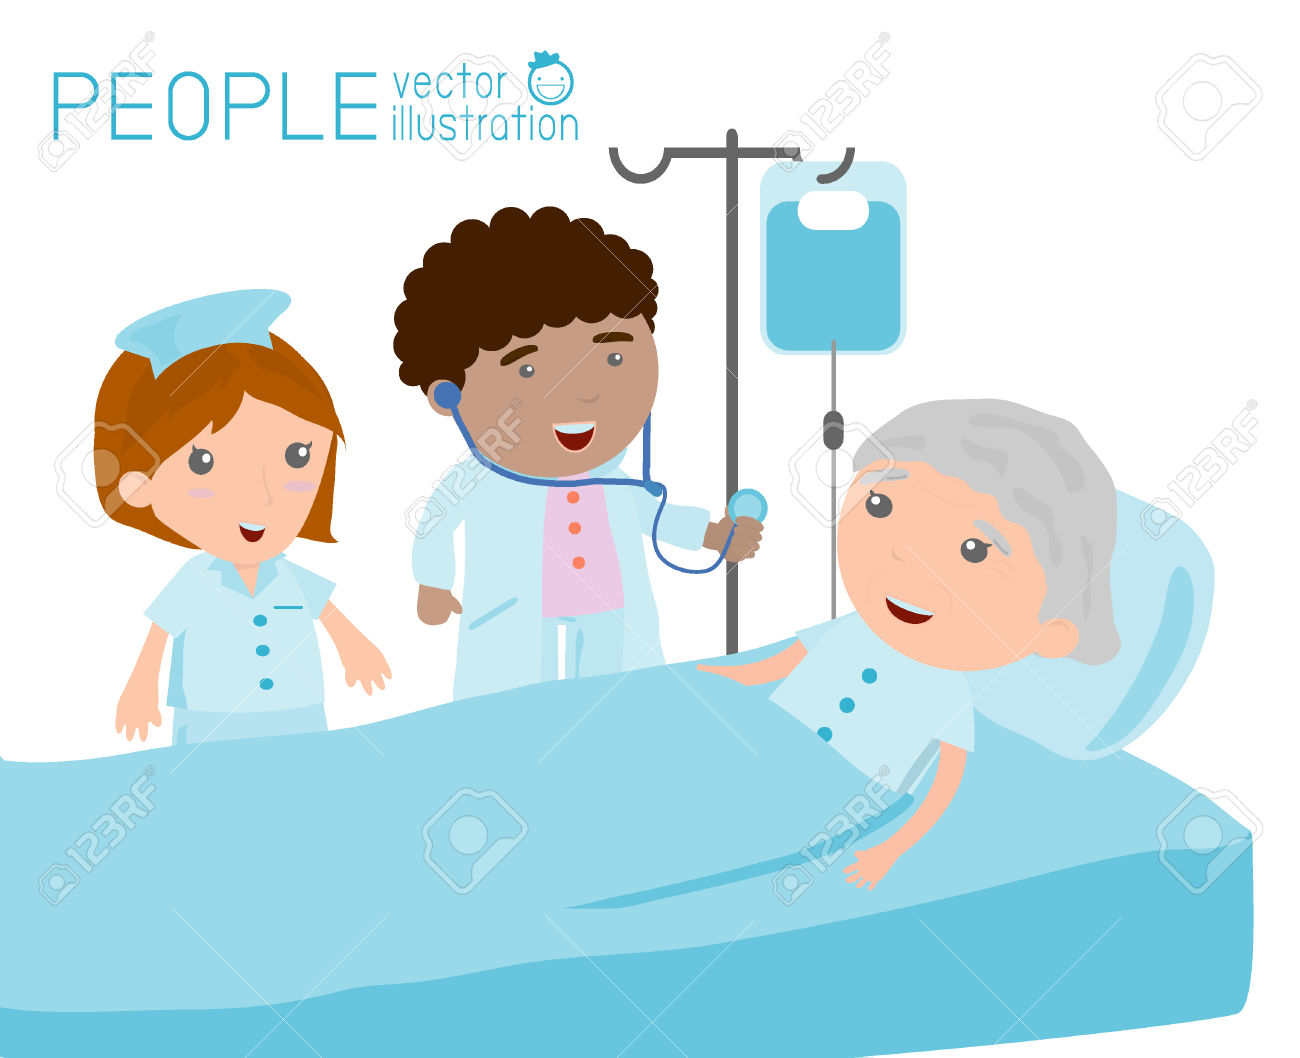 Sick Kids Cliparts, Stock Vector And Royalty Free Sick Kids.